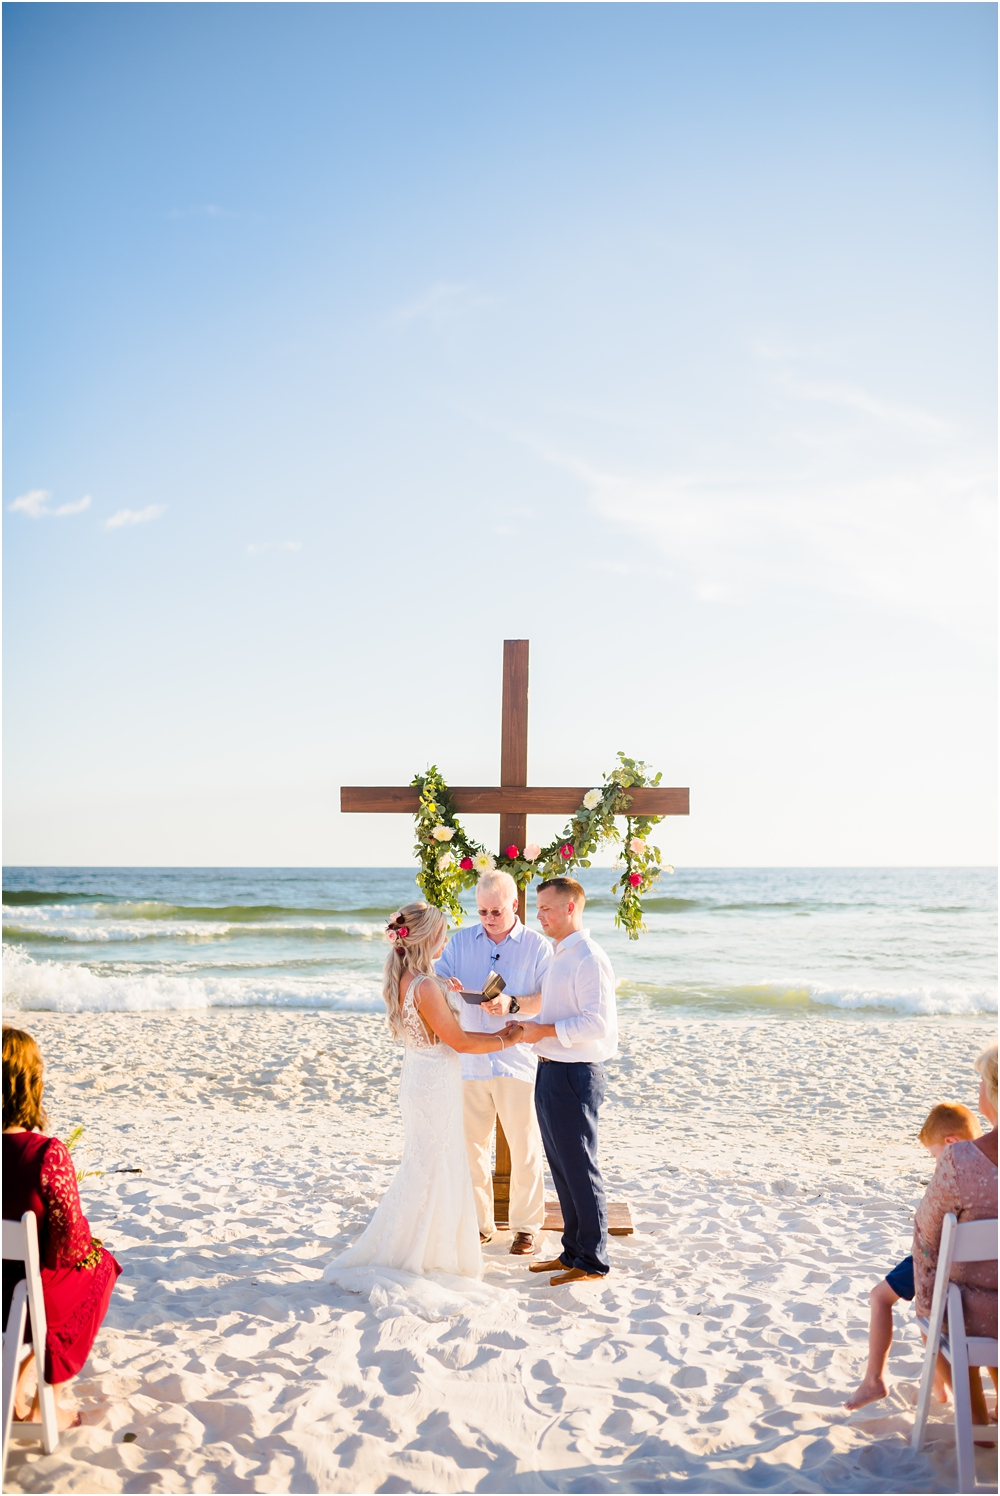 mcglothlin-wedding-kiersten-stevenson-photography-30a-panama-city-beach-dothan-tallahassee-(83-of-145).jpg